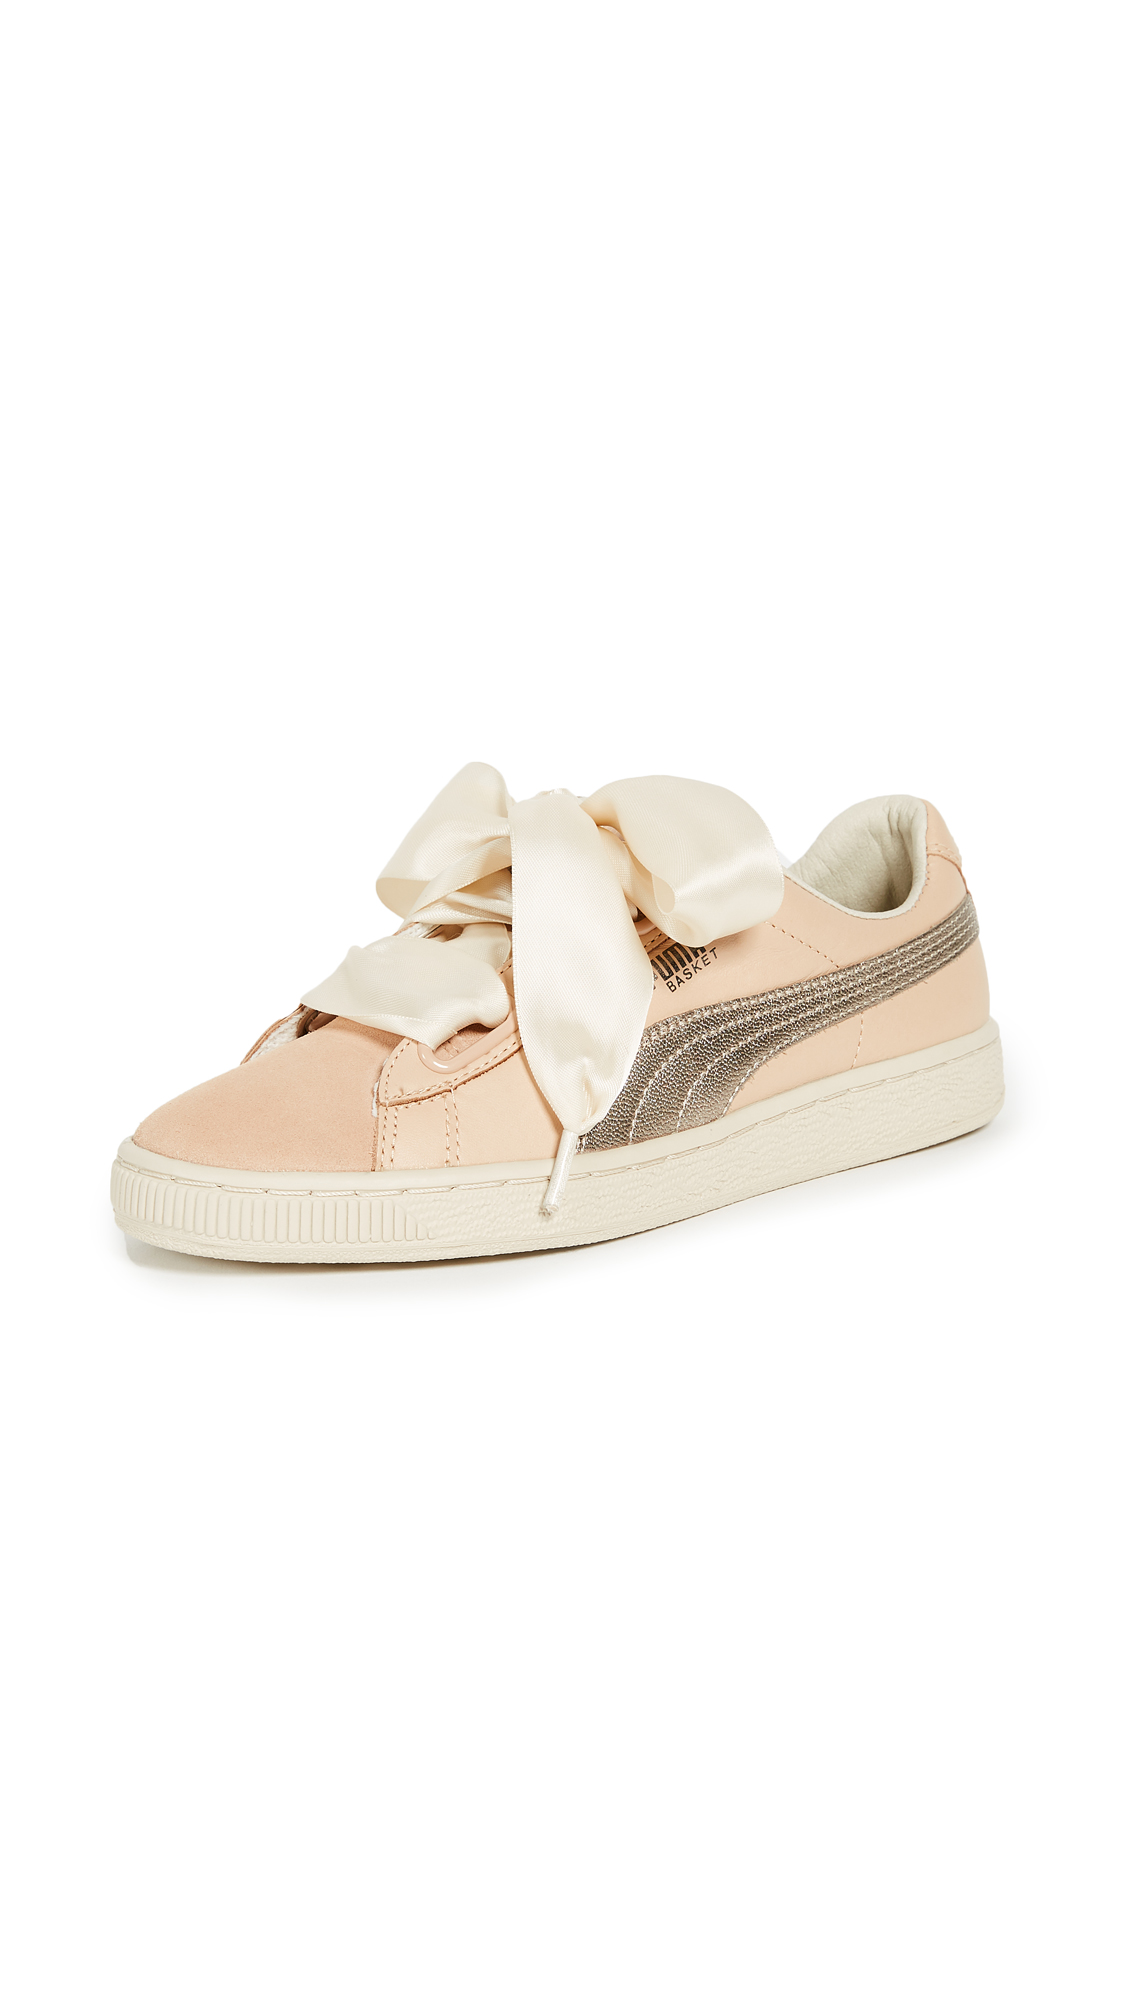 PUMA Basket Heart Up Sneakers - Natural Vachetta